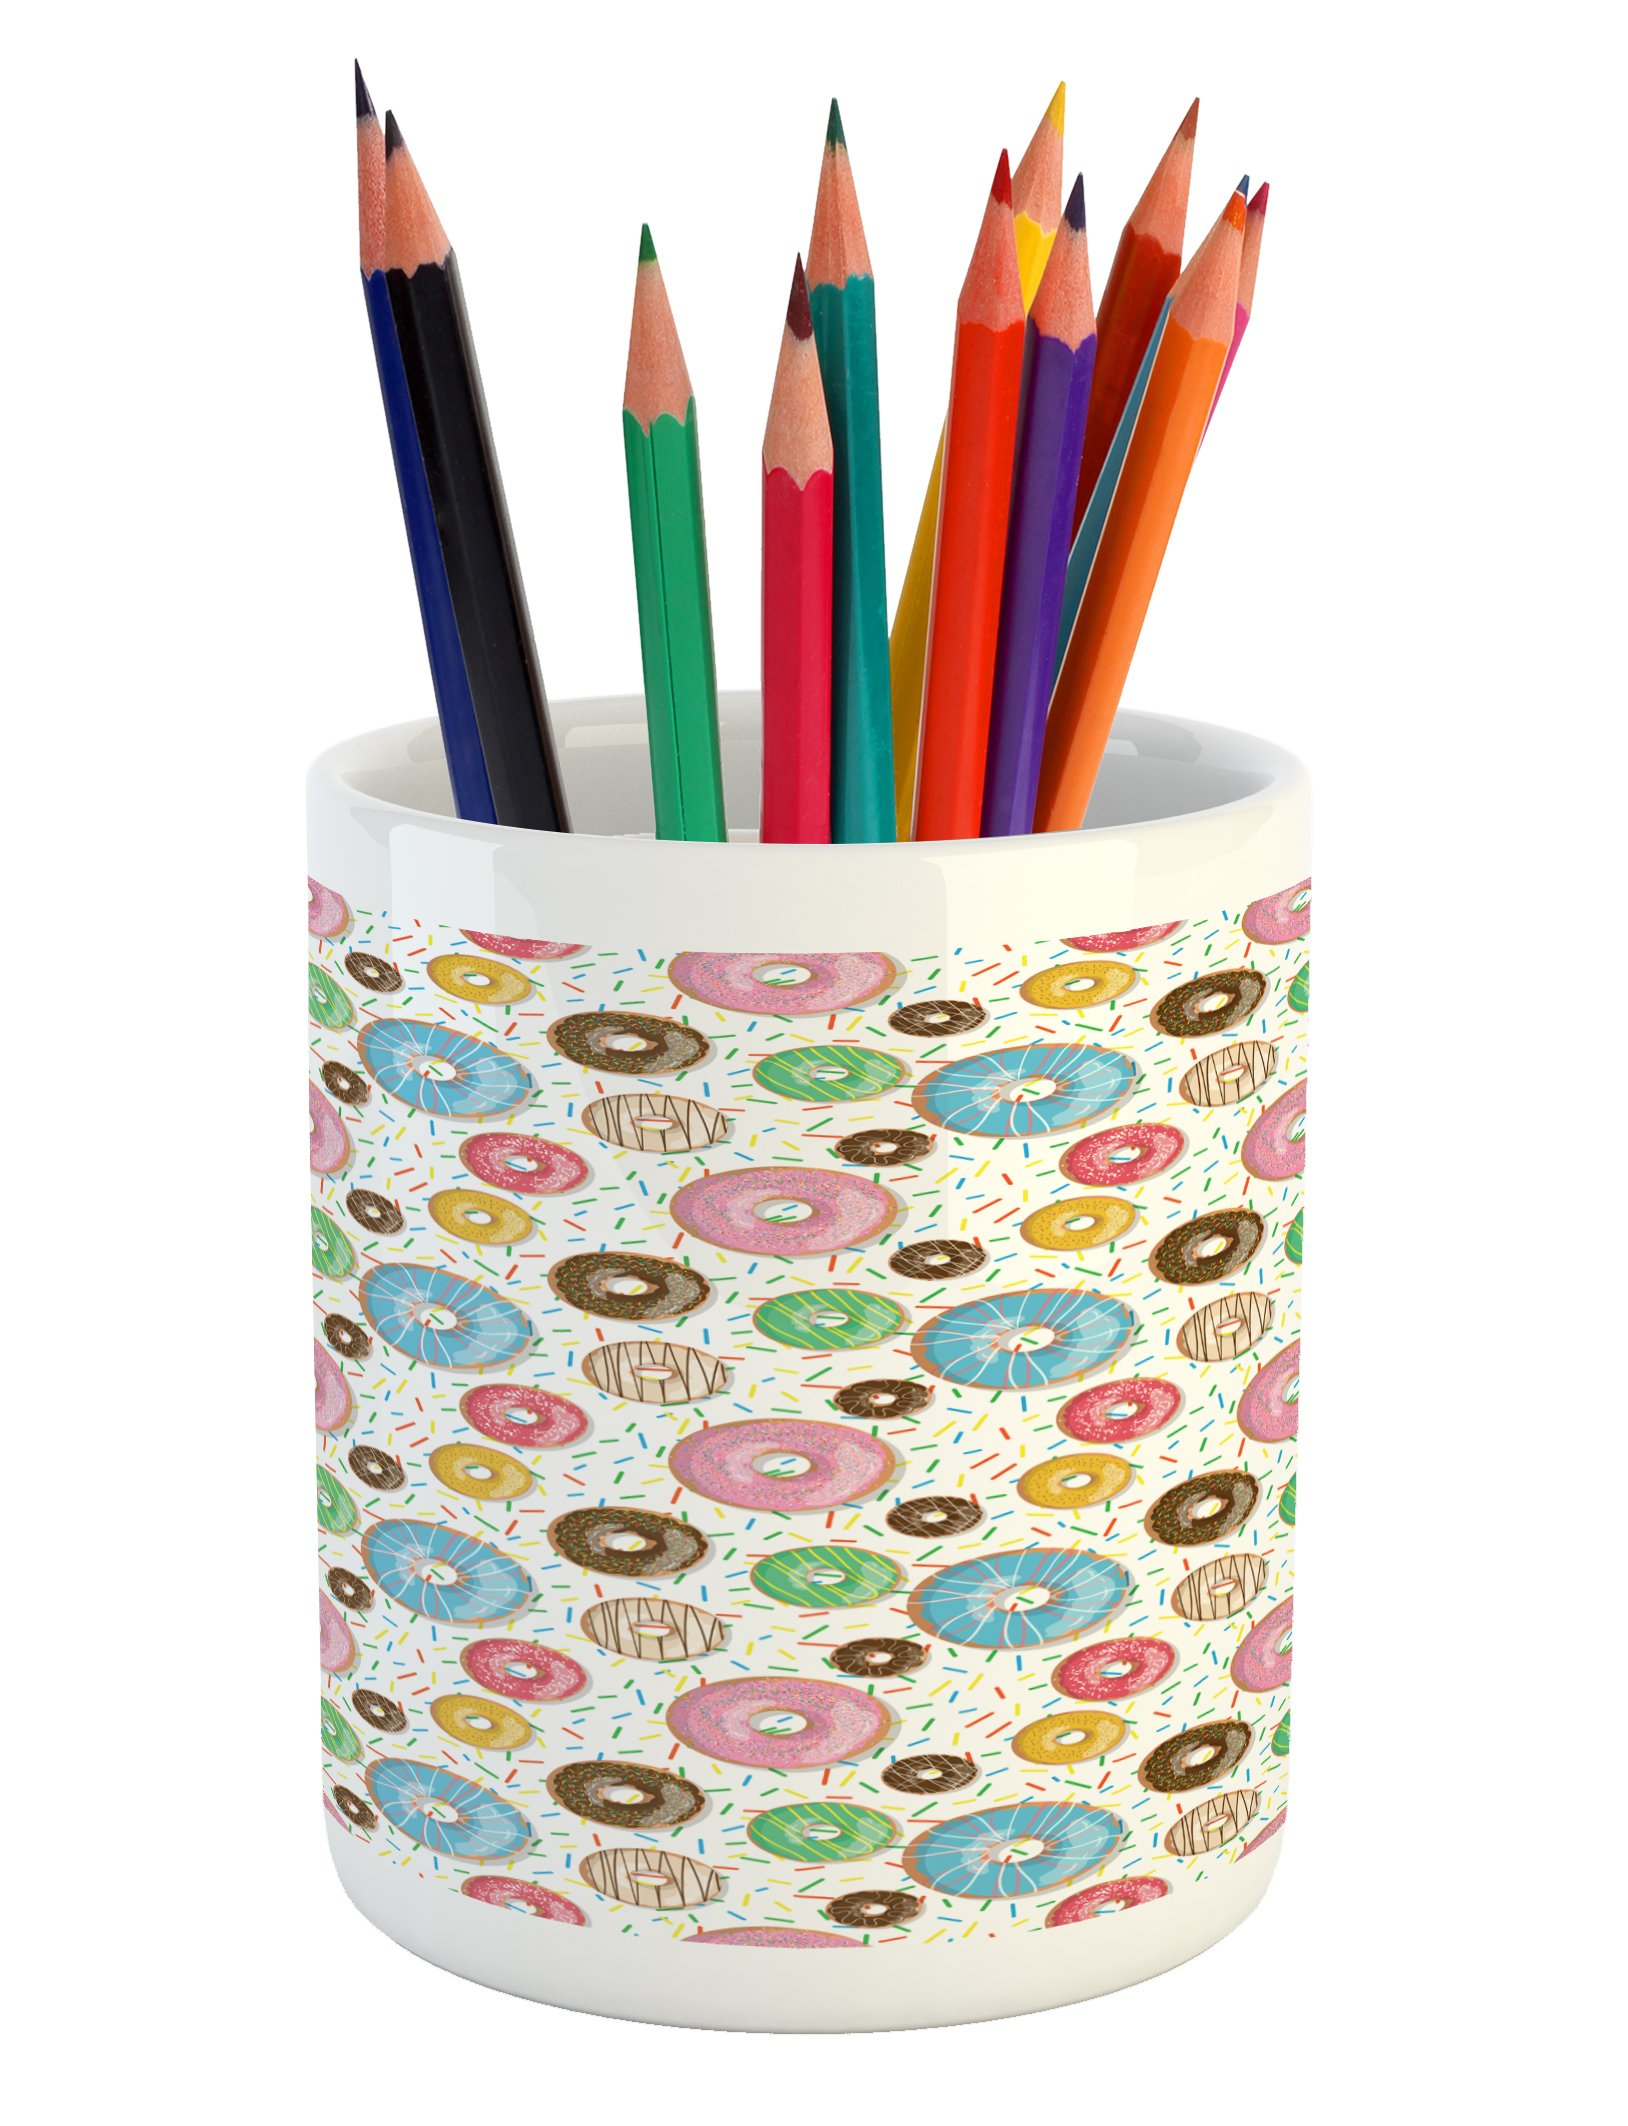 Lunarable Dessert Pencil Pen Holder, Tasty Chocolate and Cream Glazed Doughnuts with Sprinkles Pattern Delicious Bakery, Printed Ceramic Pencil Pen Holder for Desk Office Accessory, Multicolor